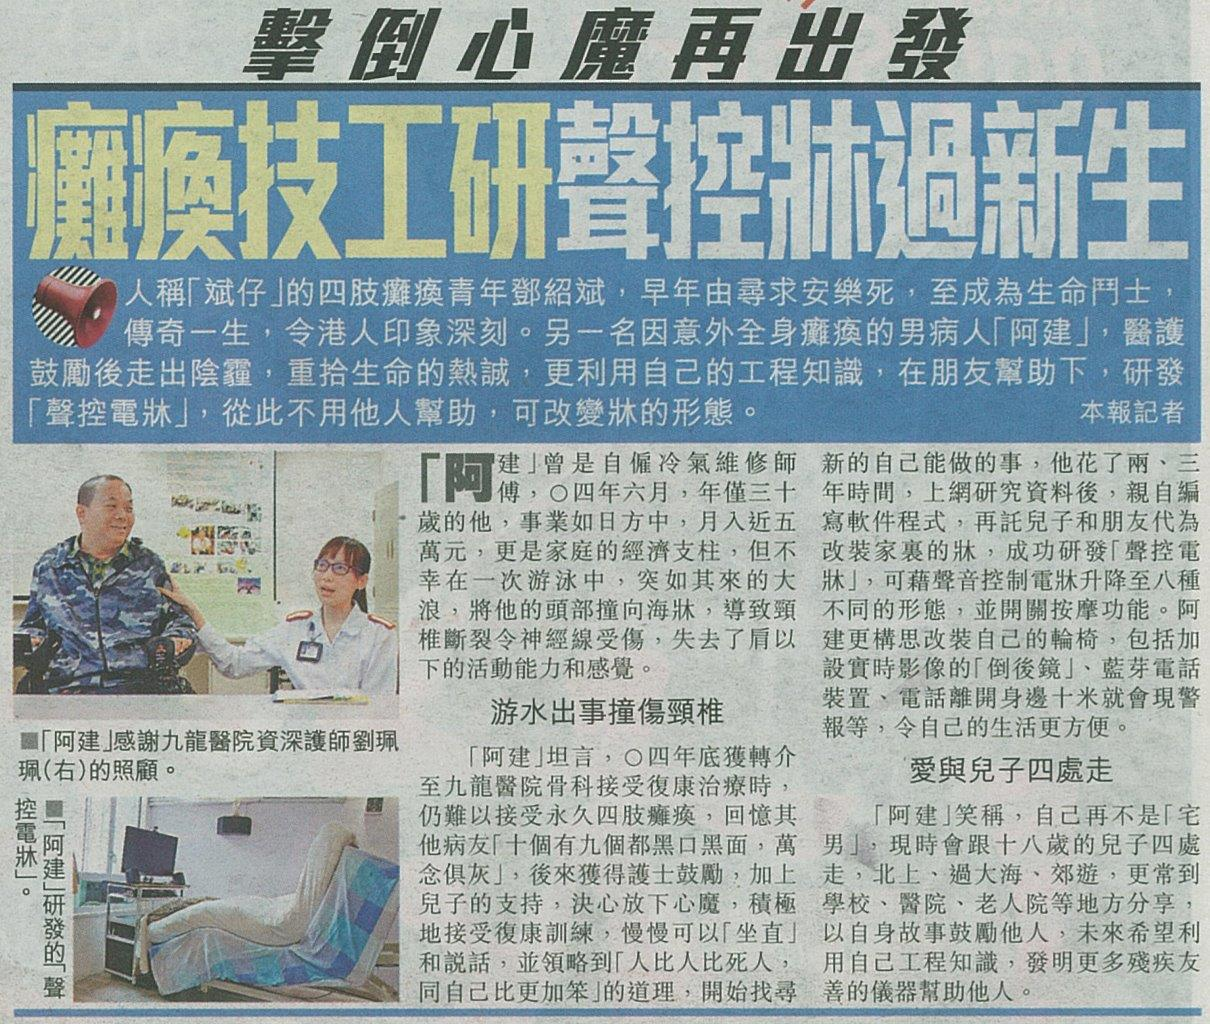 News about Assistive Technology for Person with Disability (Chinese only)